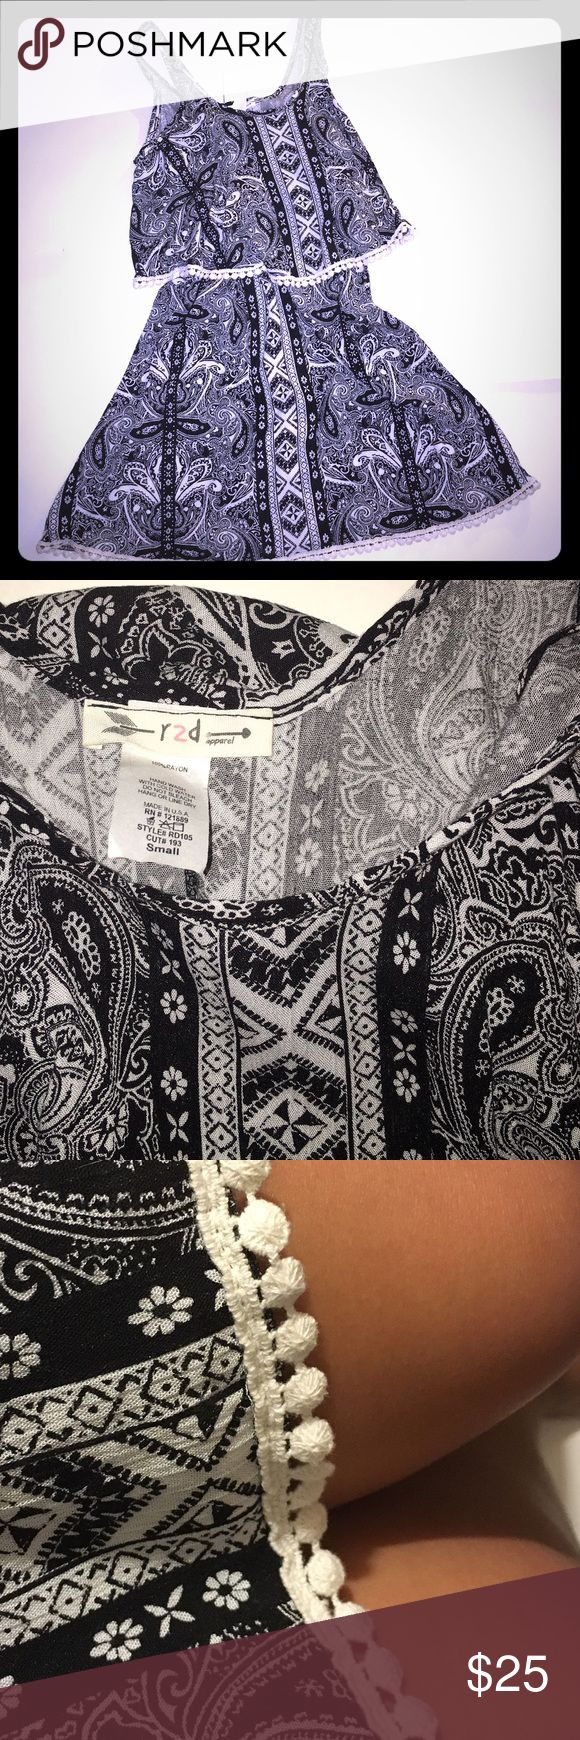 Cute spring dress ❤️ Black and white spring dress❤️ worn only once, great condition ❤️❤️ r2d Dresses